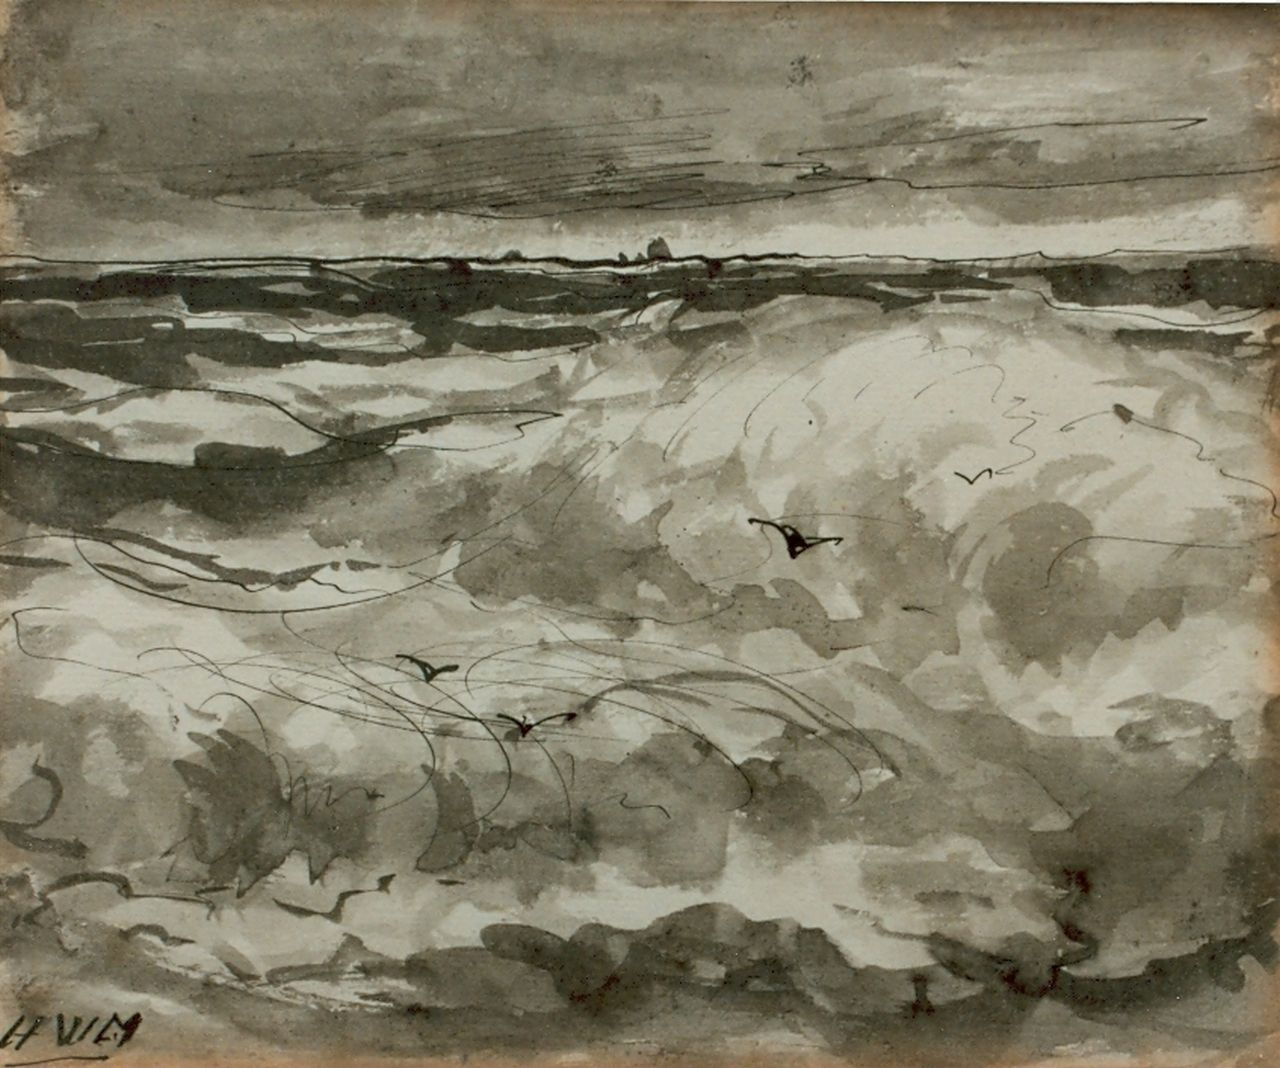 Mesdag H.W.  | Hendrik Willem Mesdag, Seascape, pen and ink on paper 15.7 x 18.8 cm, signed l.l. with monogram